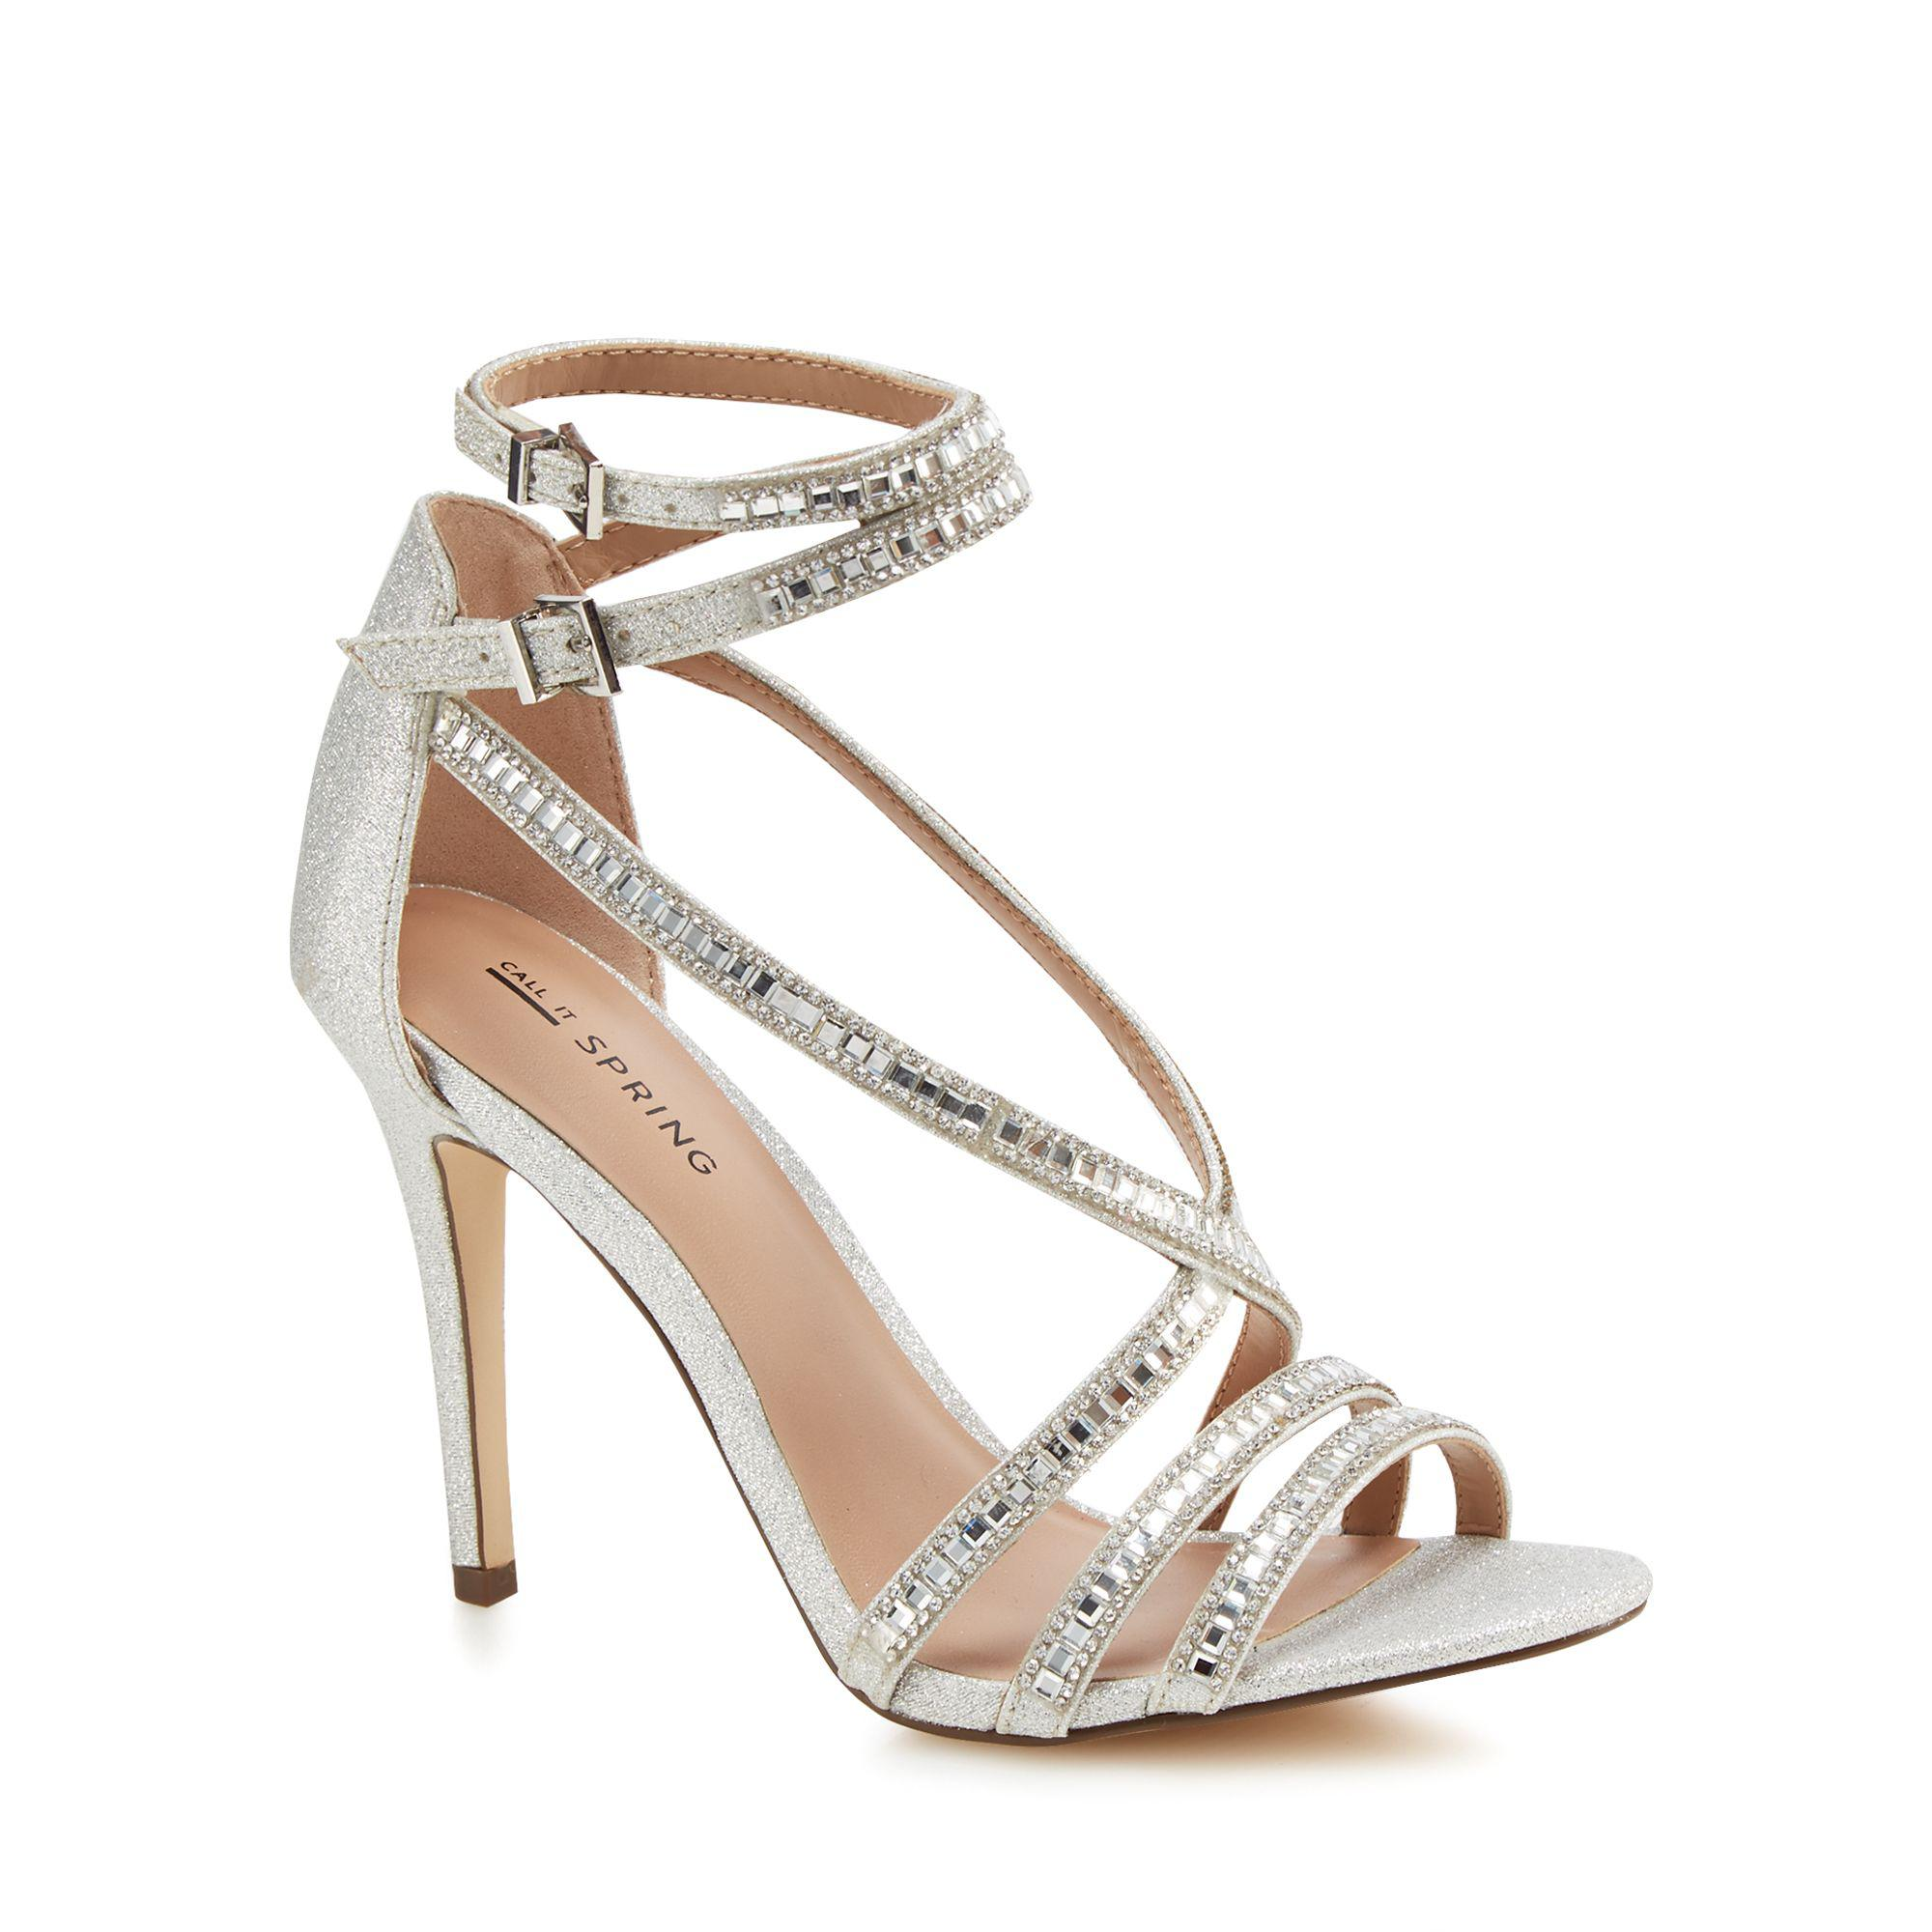 c7e29e01e451 Call It Spring. Women s Metallic Silver Glitter  gaffigan  High Stiletto  Heel Ankle Strap Sandals